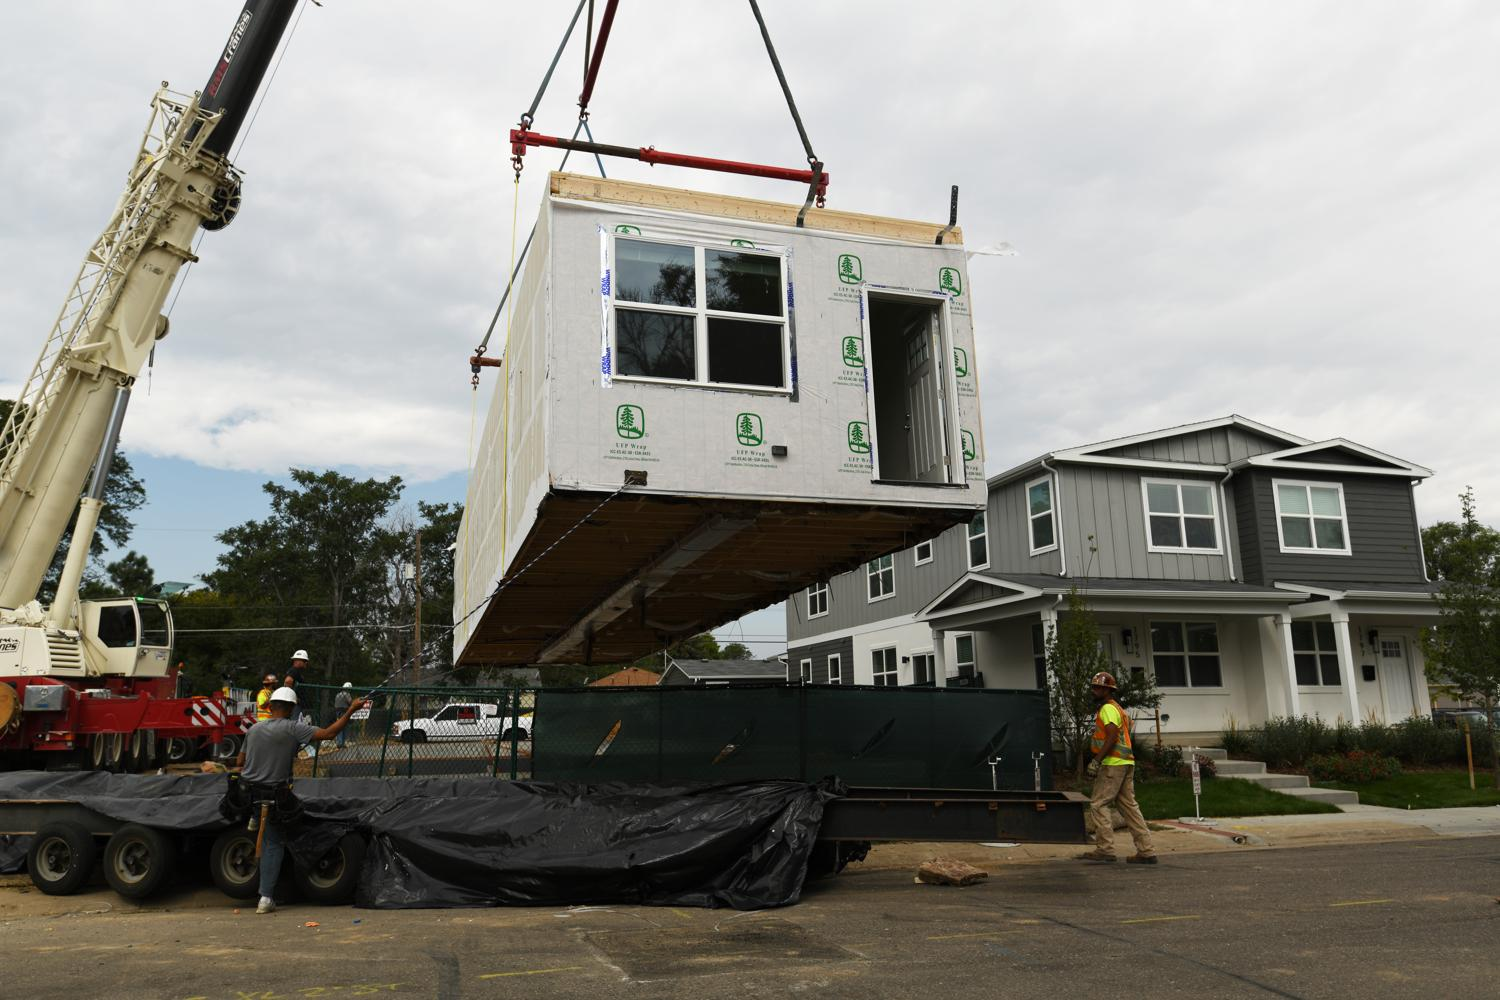 Housing factories are spreading across the West, and one is shipping to Colorado